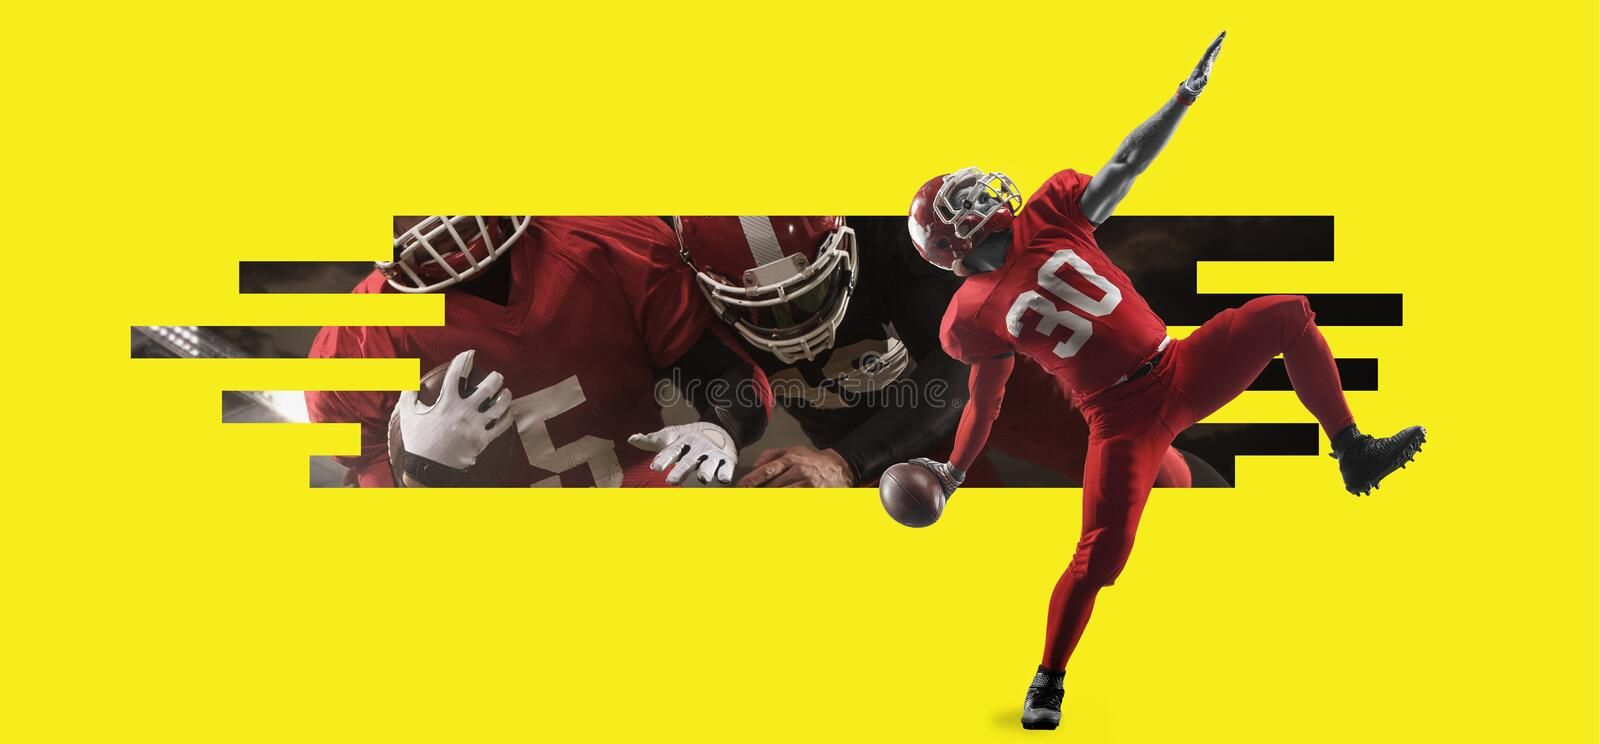 American football players in action against yellow copyspace royalty free stock photos